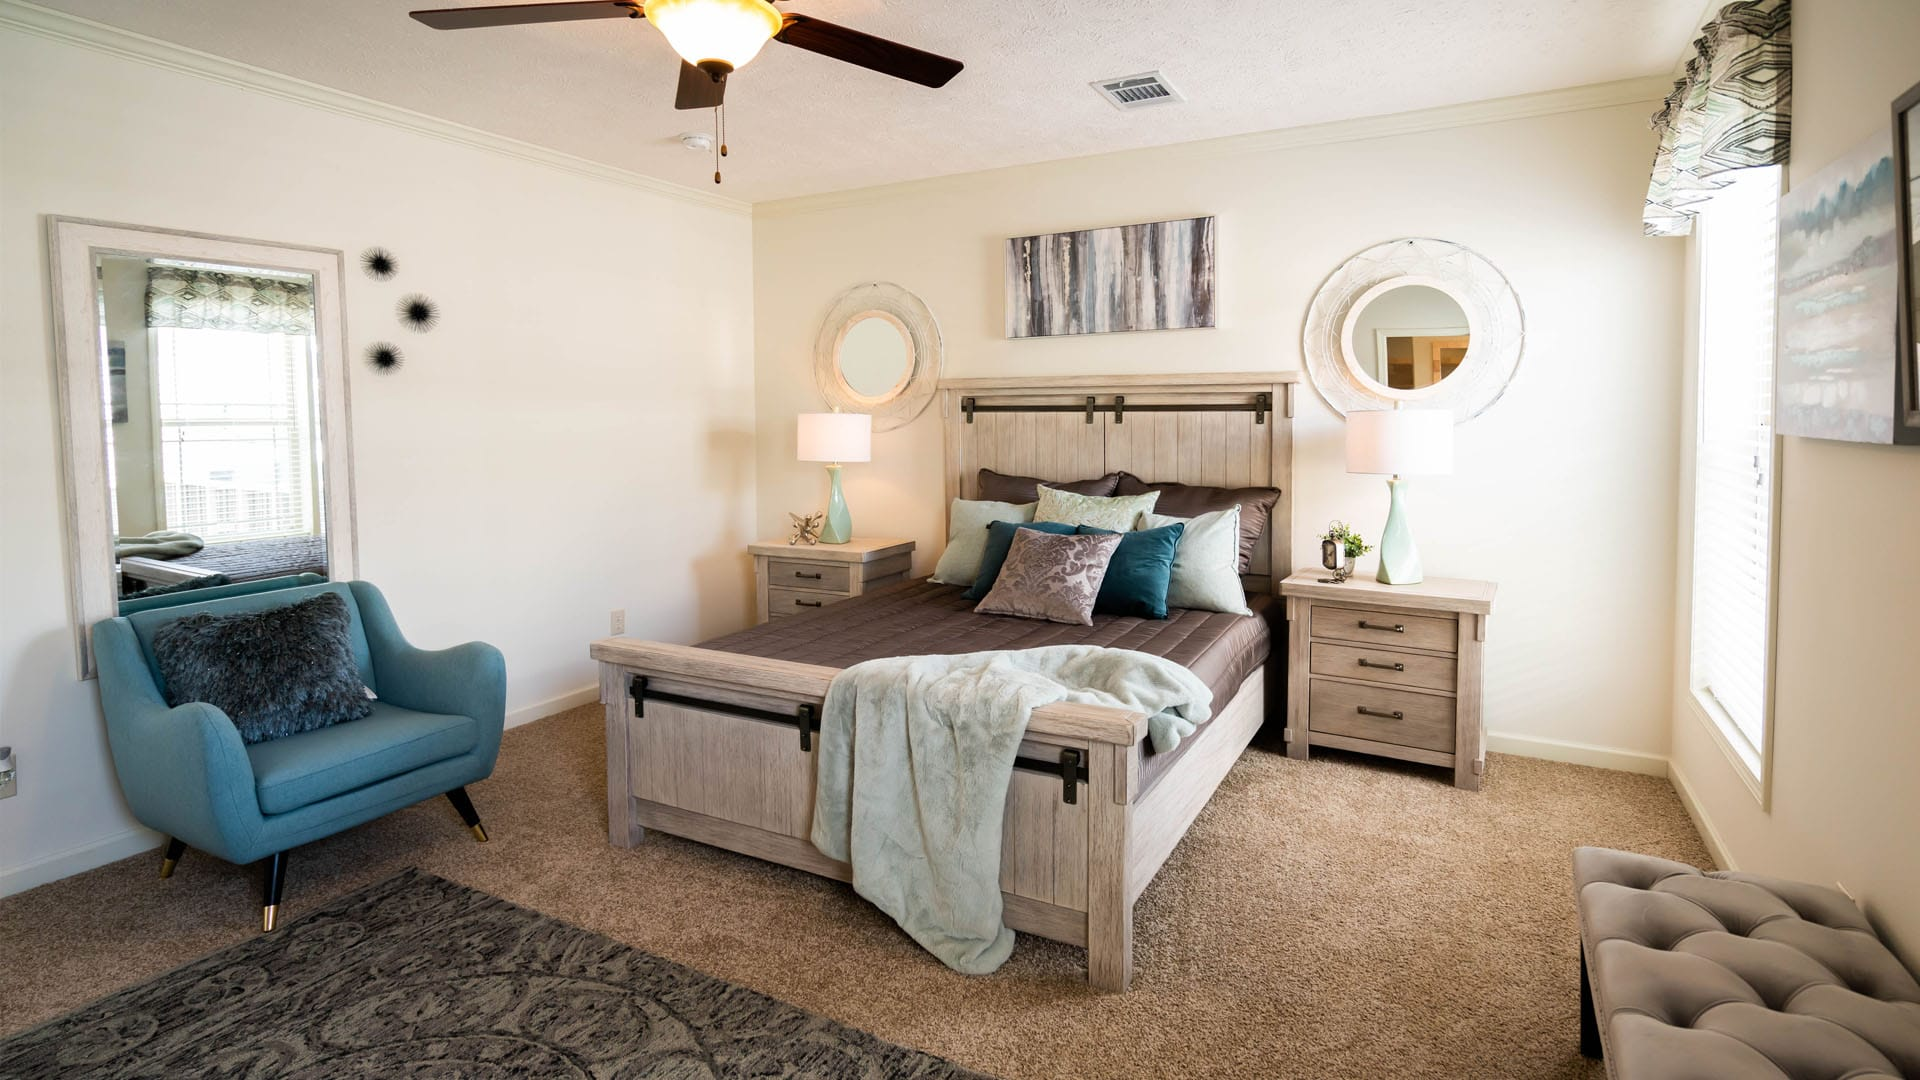 Deer Valley Homebuilders - Mossy Oak Nativ Living Series Robins Nest Bedroom